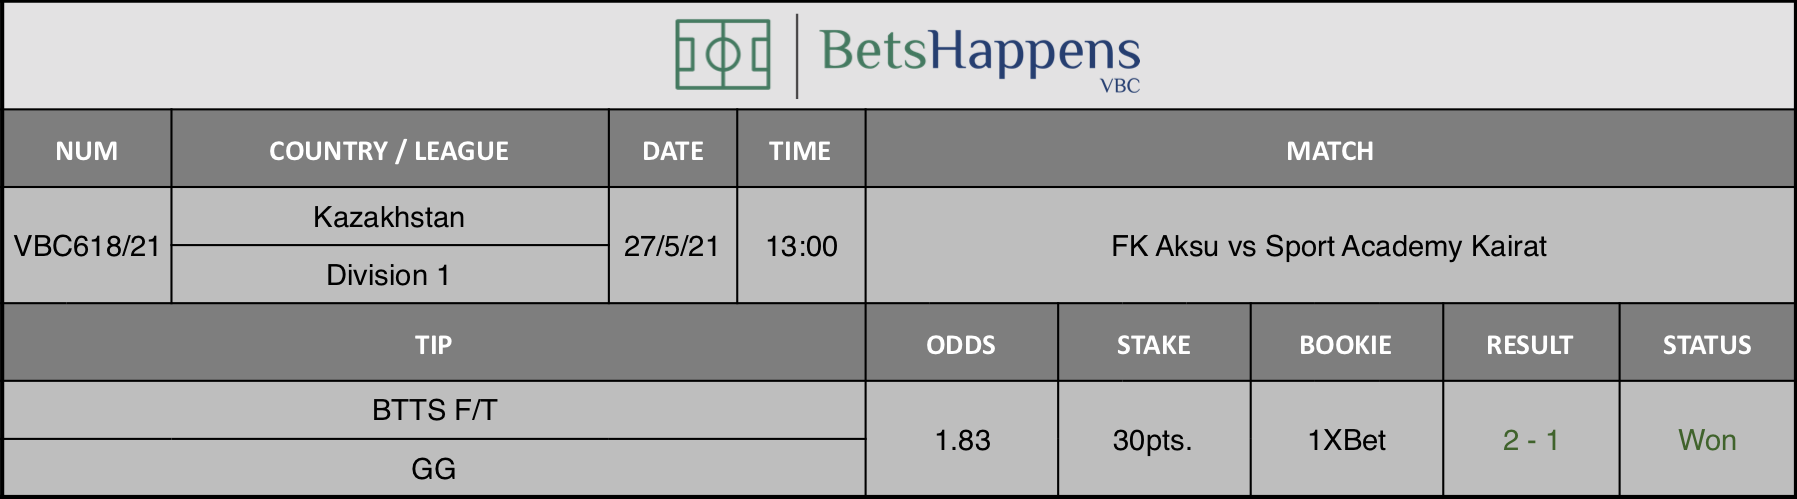 Results of our tip for the FK Aksu vs Sport Academy Kairat match where BTTS F/T  GG is recommended.